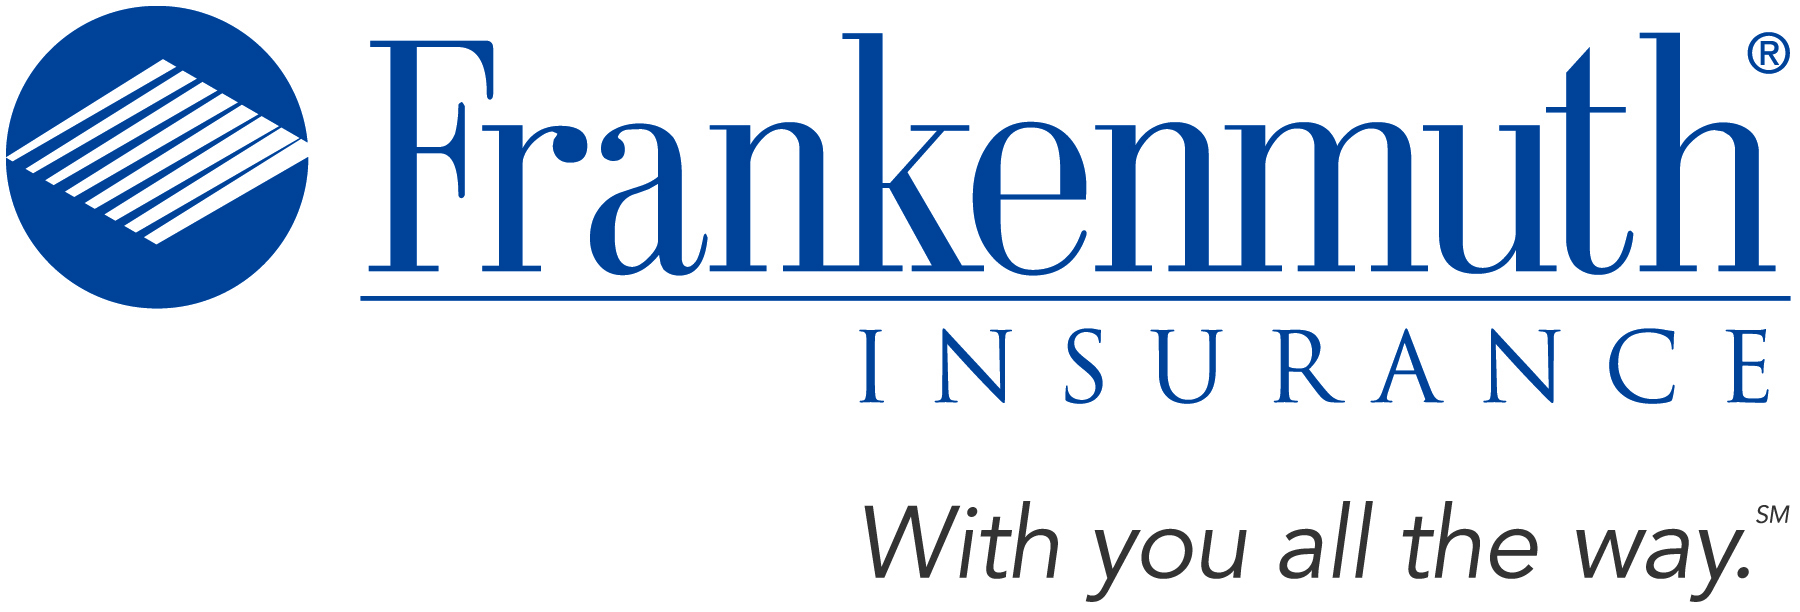 mig partner frankenmuth insurance